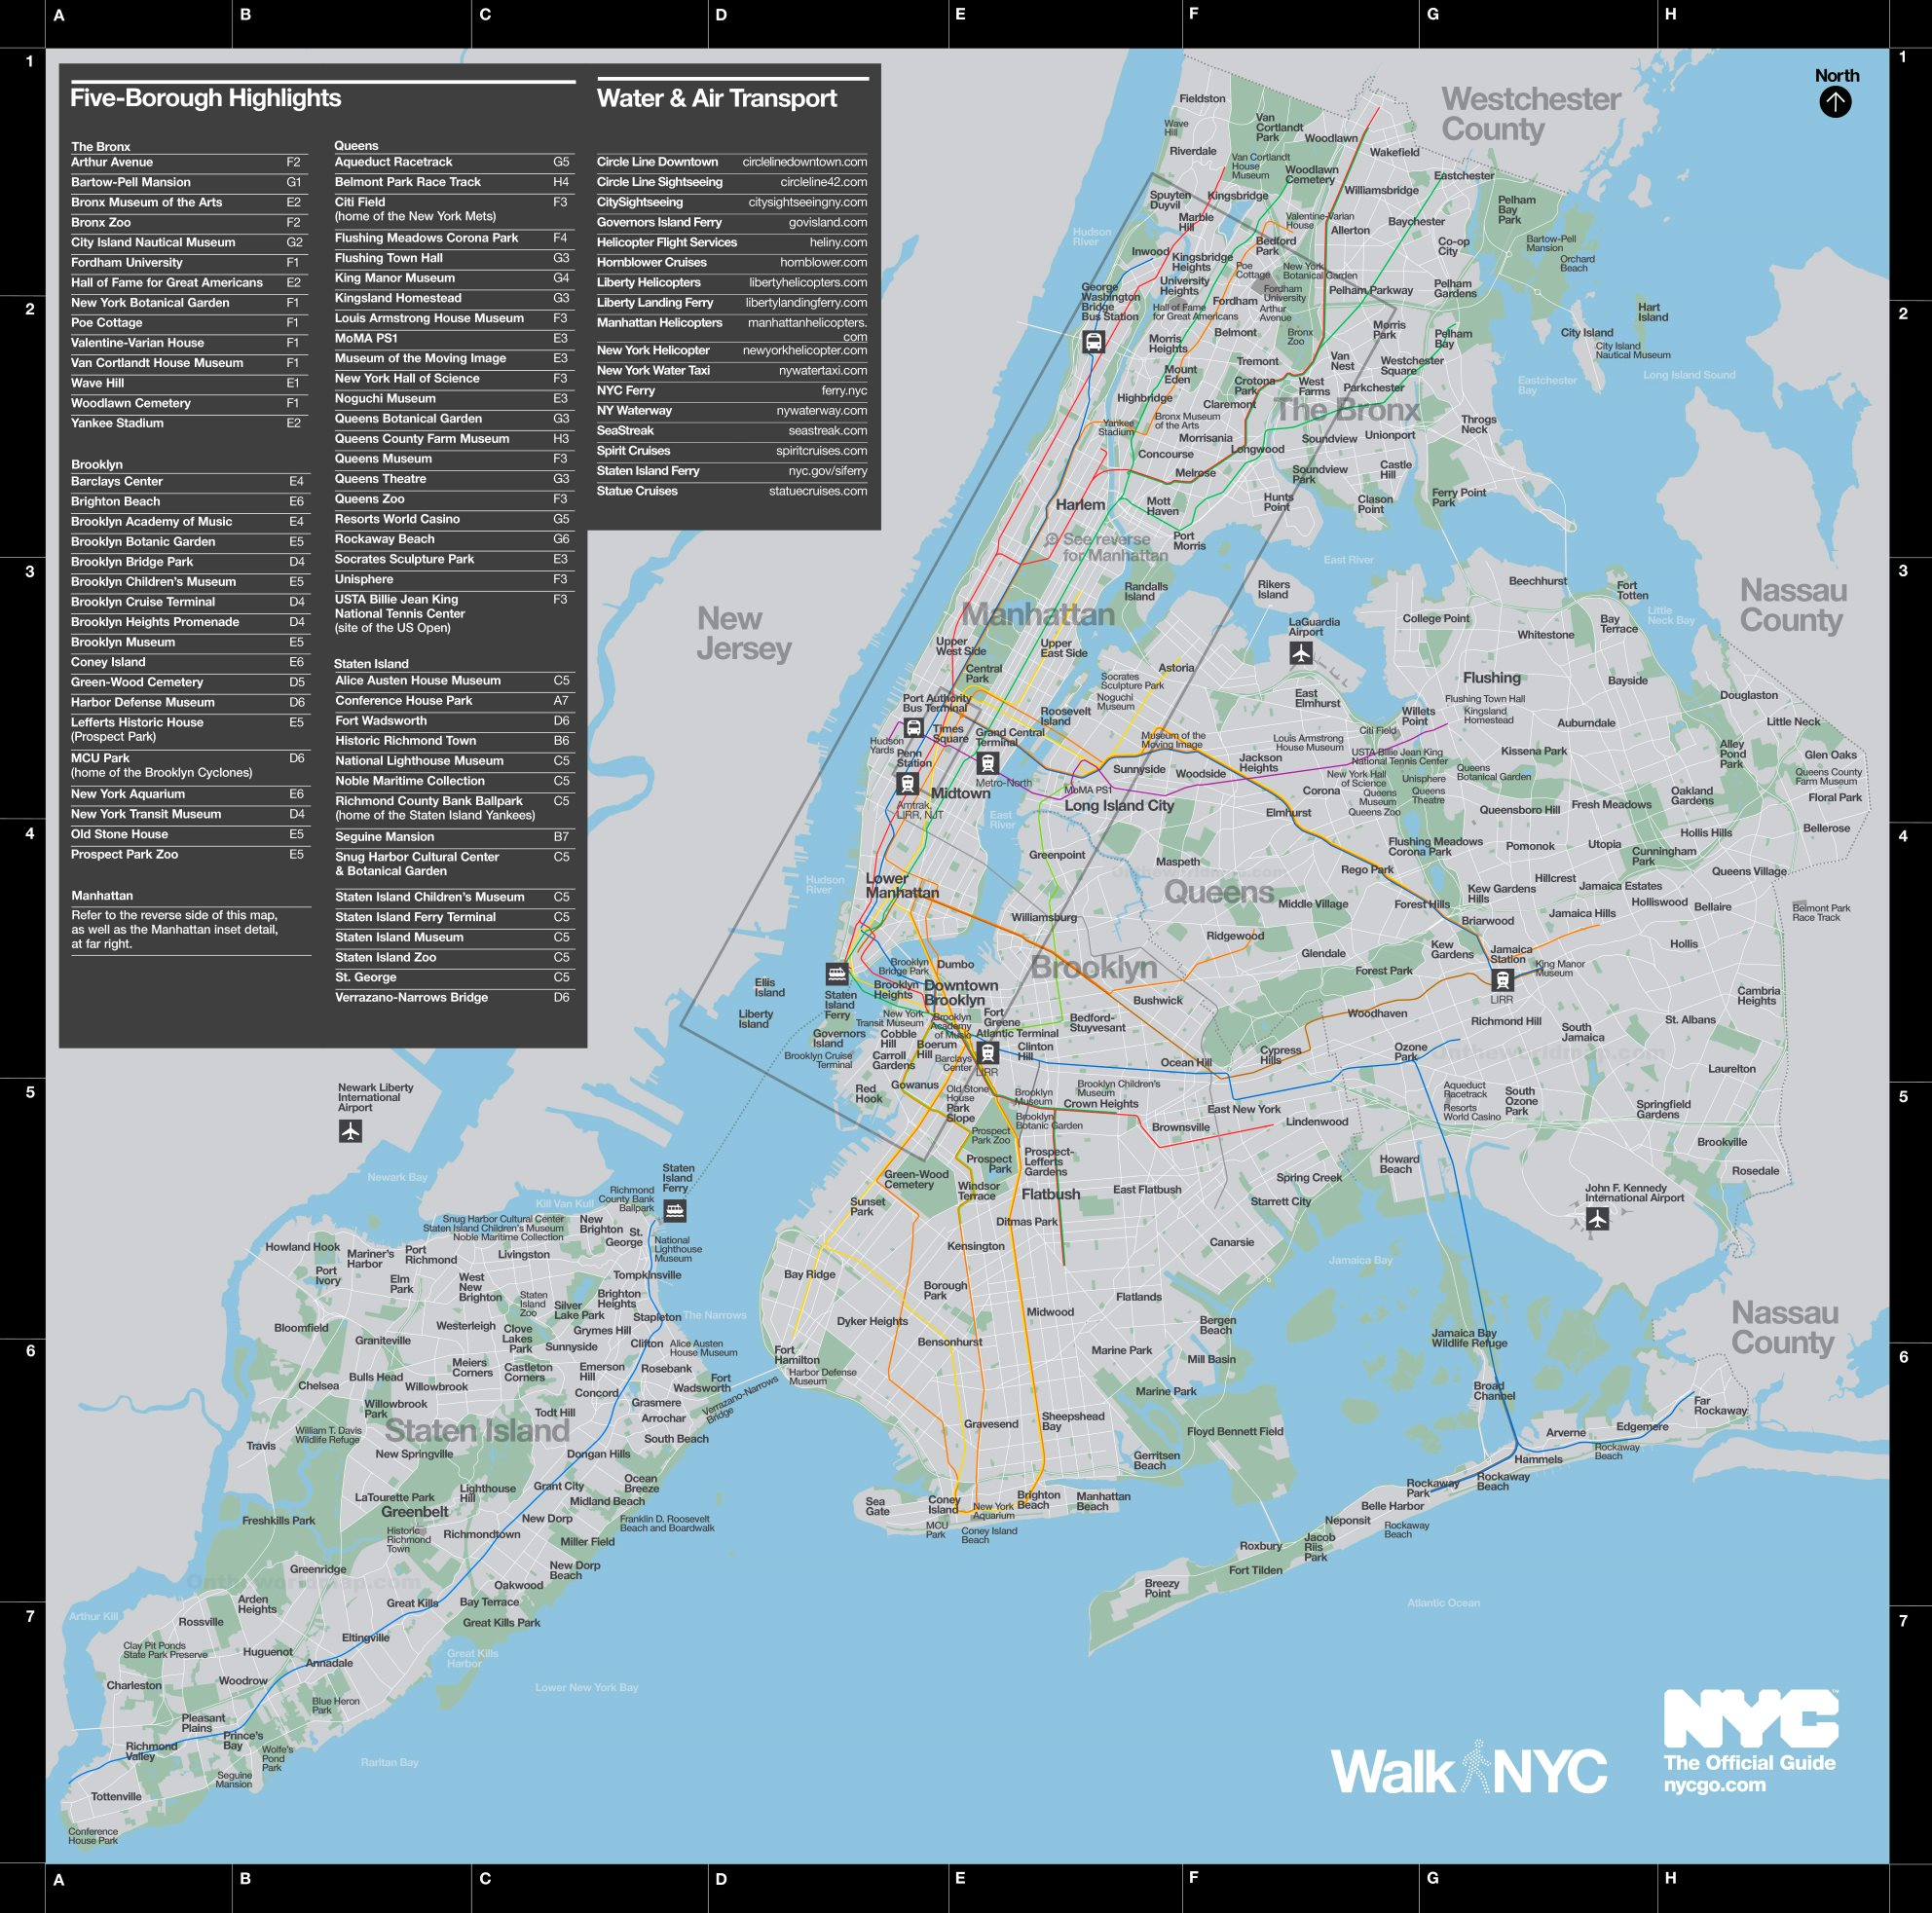 Map Of New York City Attractions.New York City Neighborhoods And Main Attractions Map